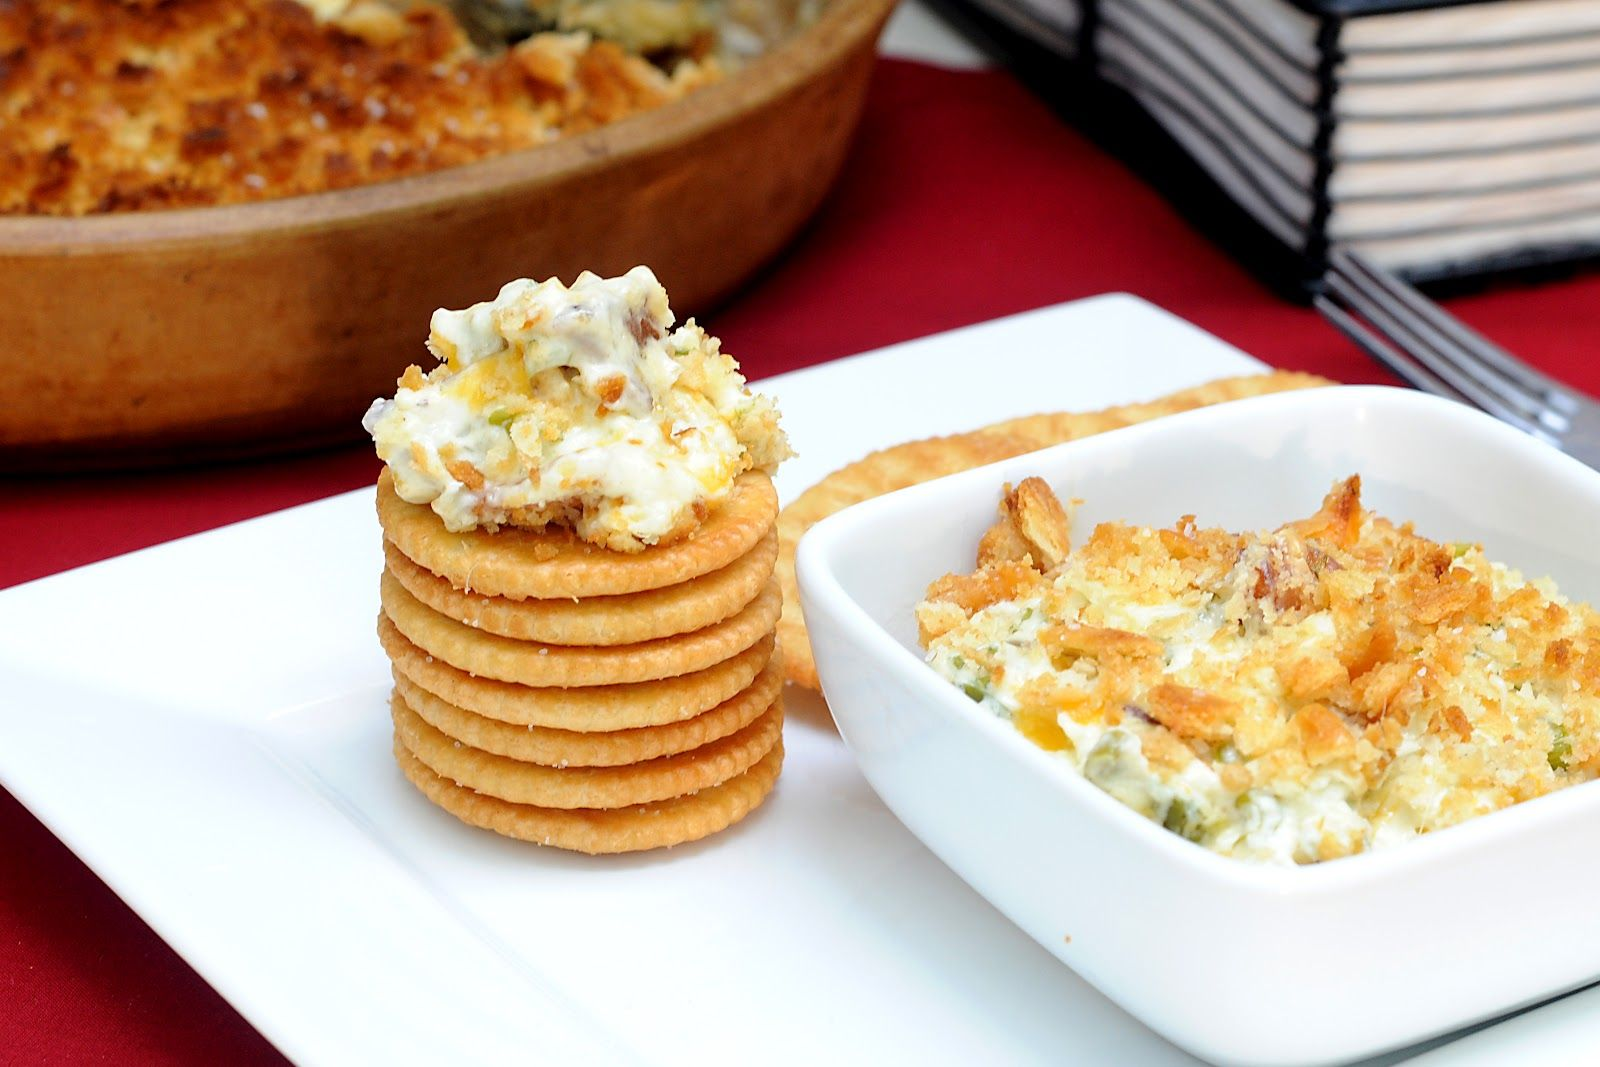 My Friend Highly Recommends This Jalapeno Popper Dip Though She Said She Omitted The Mayo And Just Added More Sour Crea Jalapeno Popper Dip Popper Dip Recipes